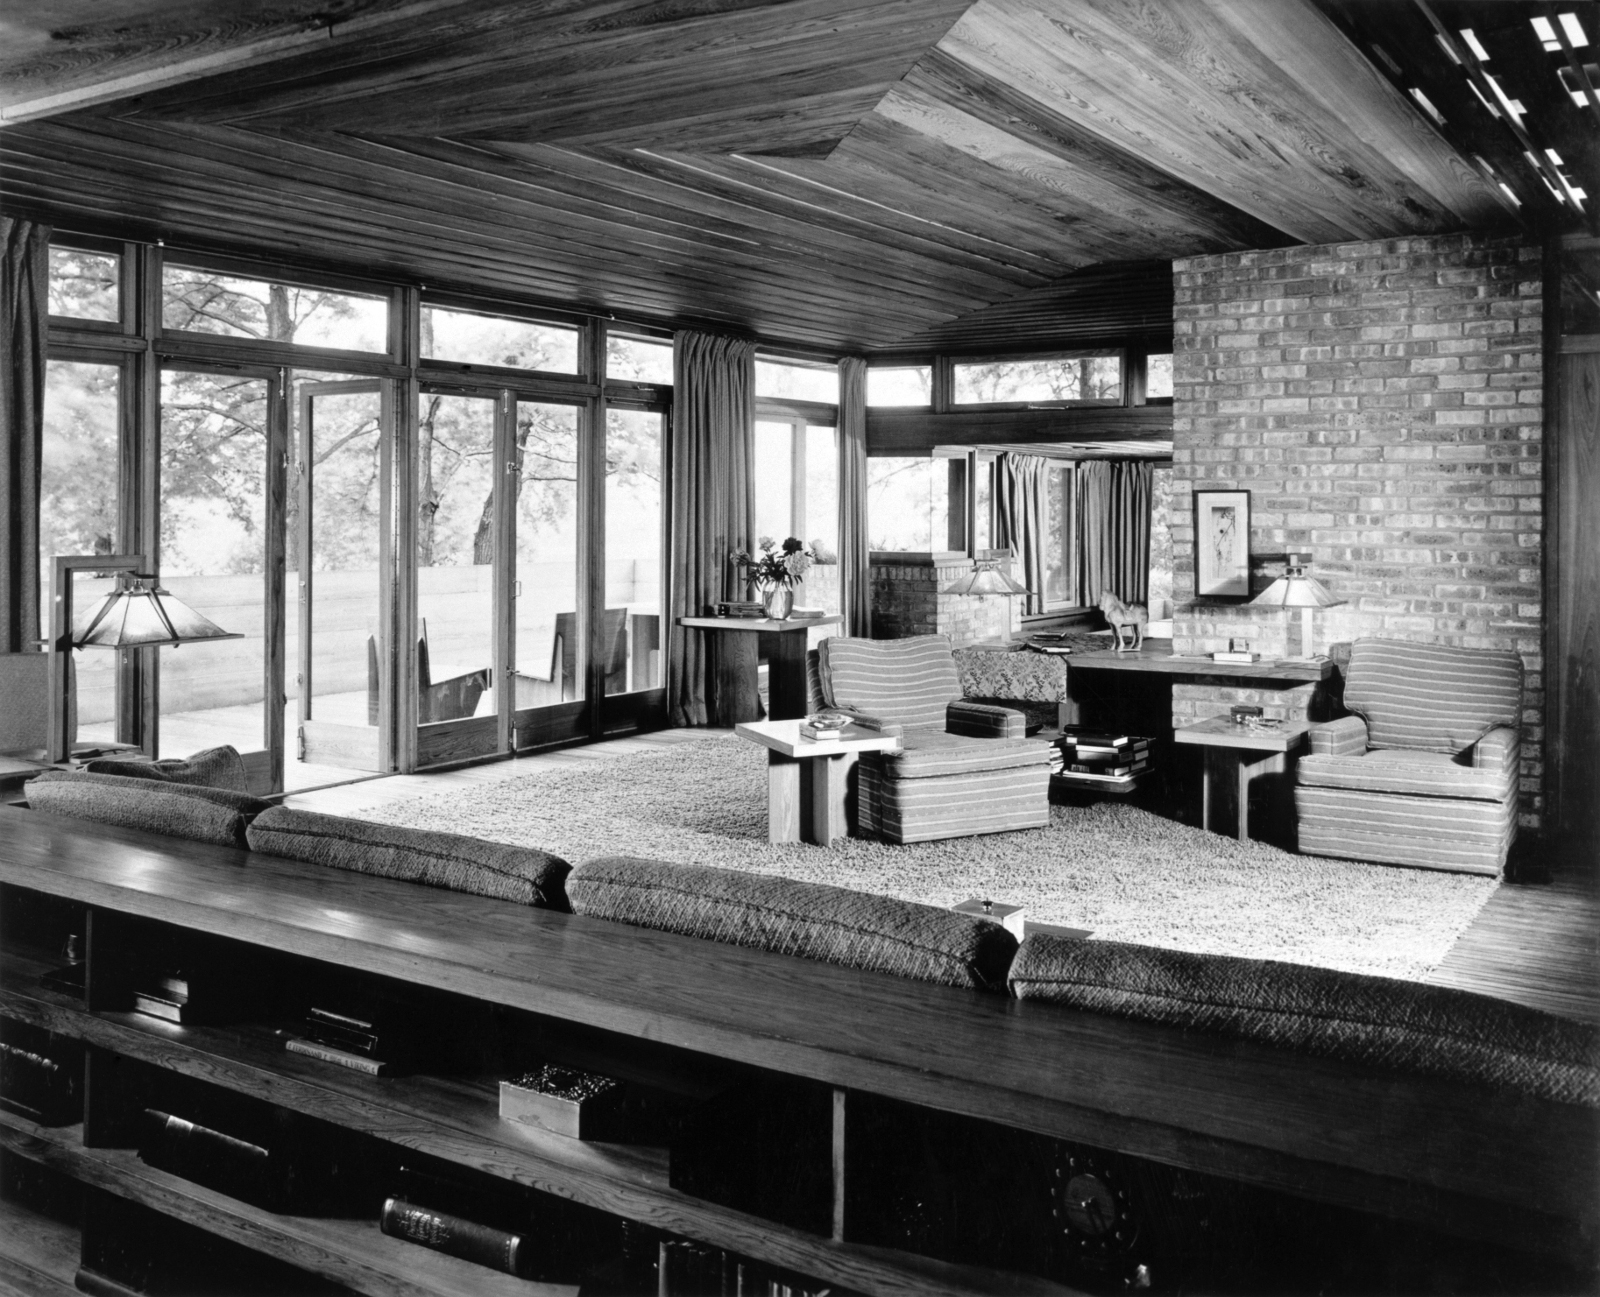 frank lloyd wright architecture of the interior cedar